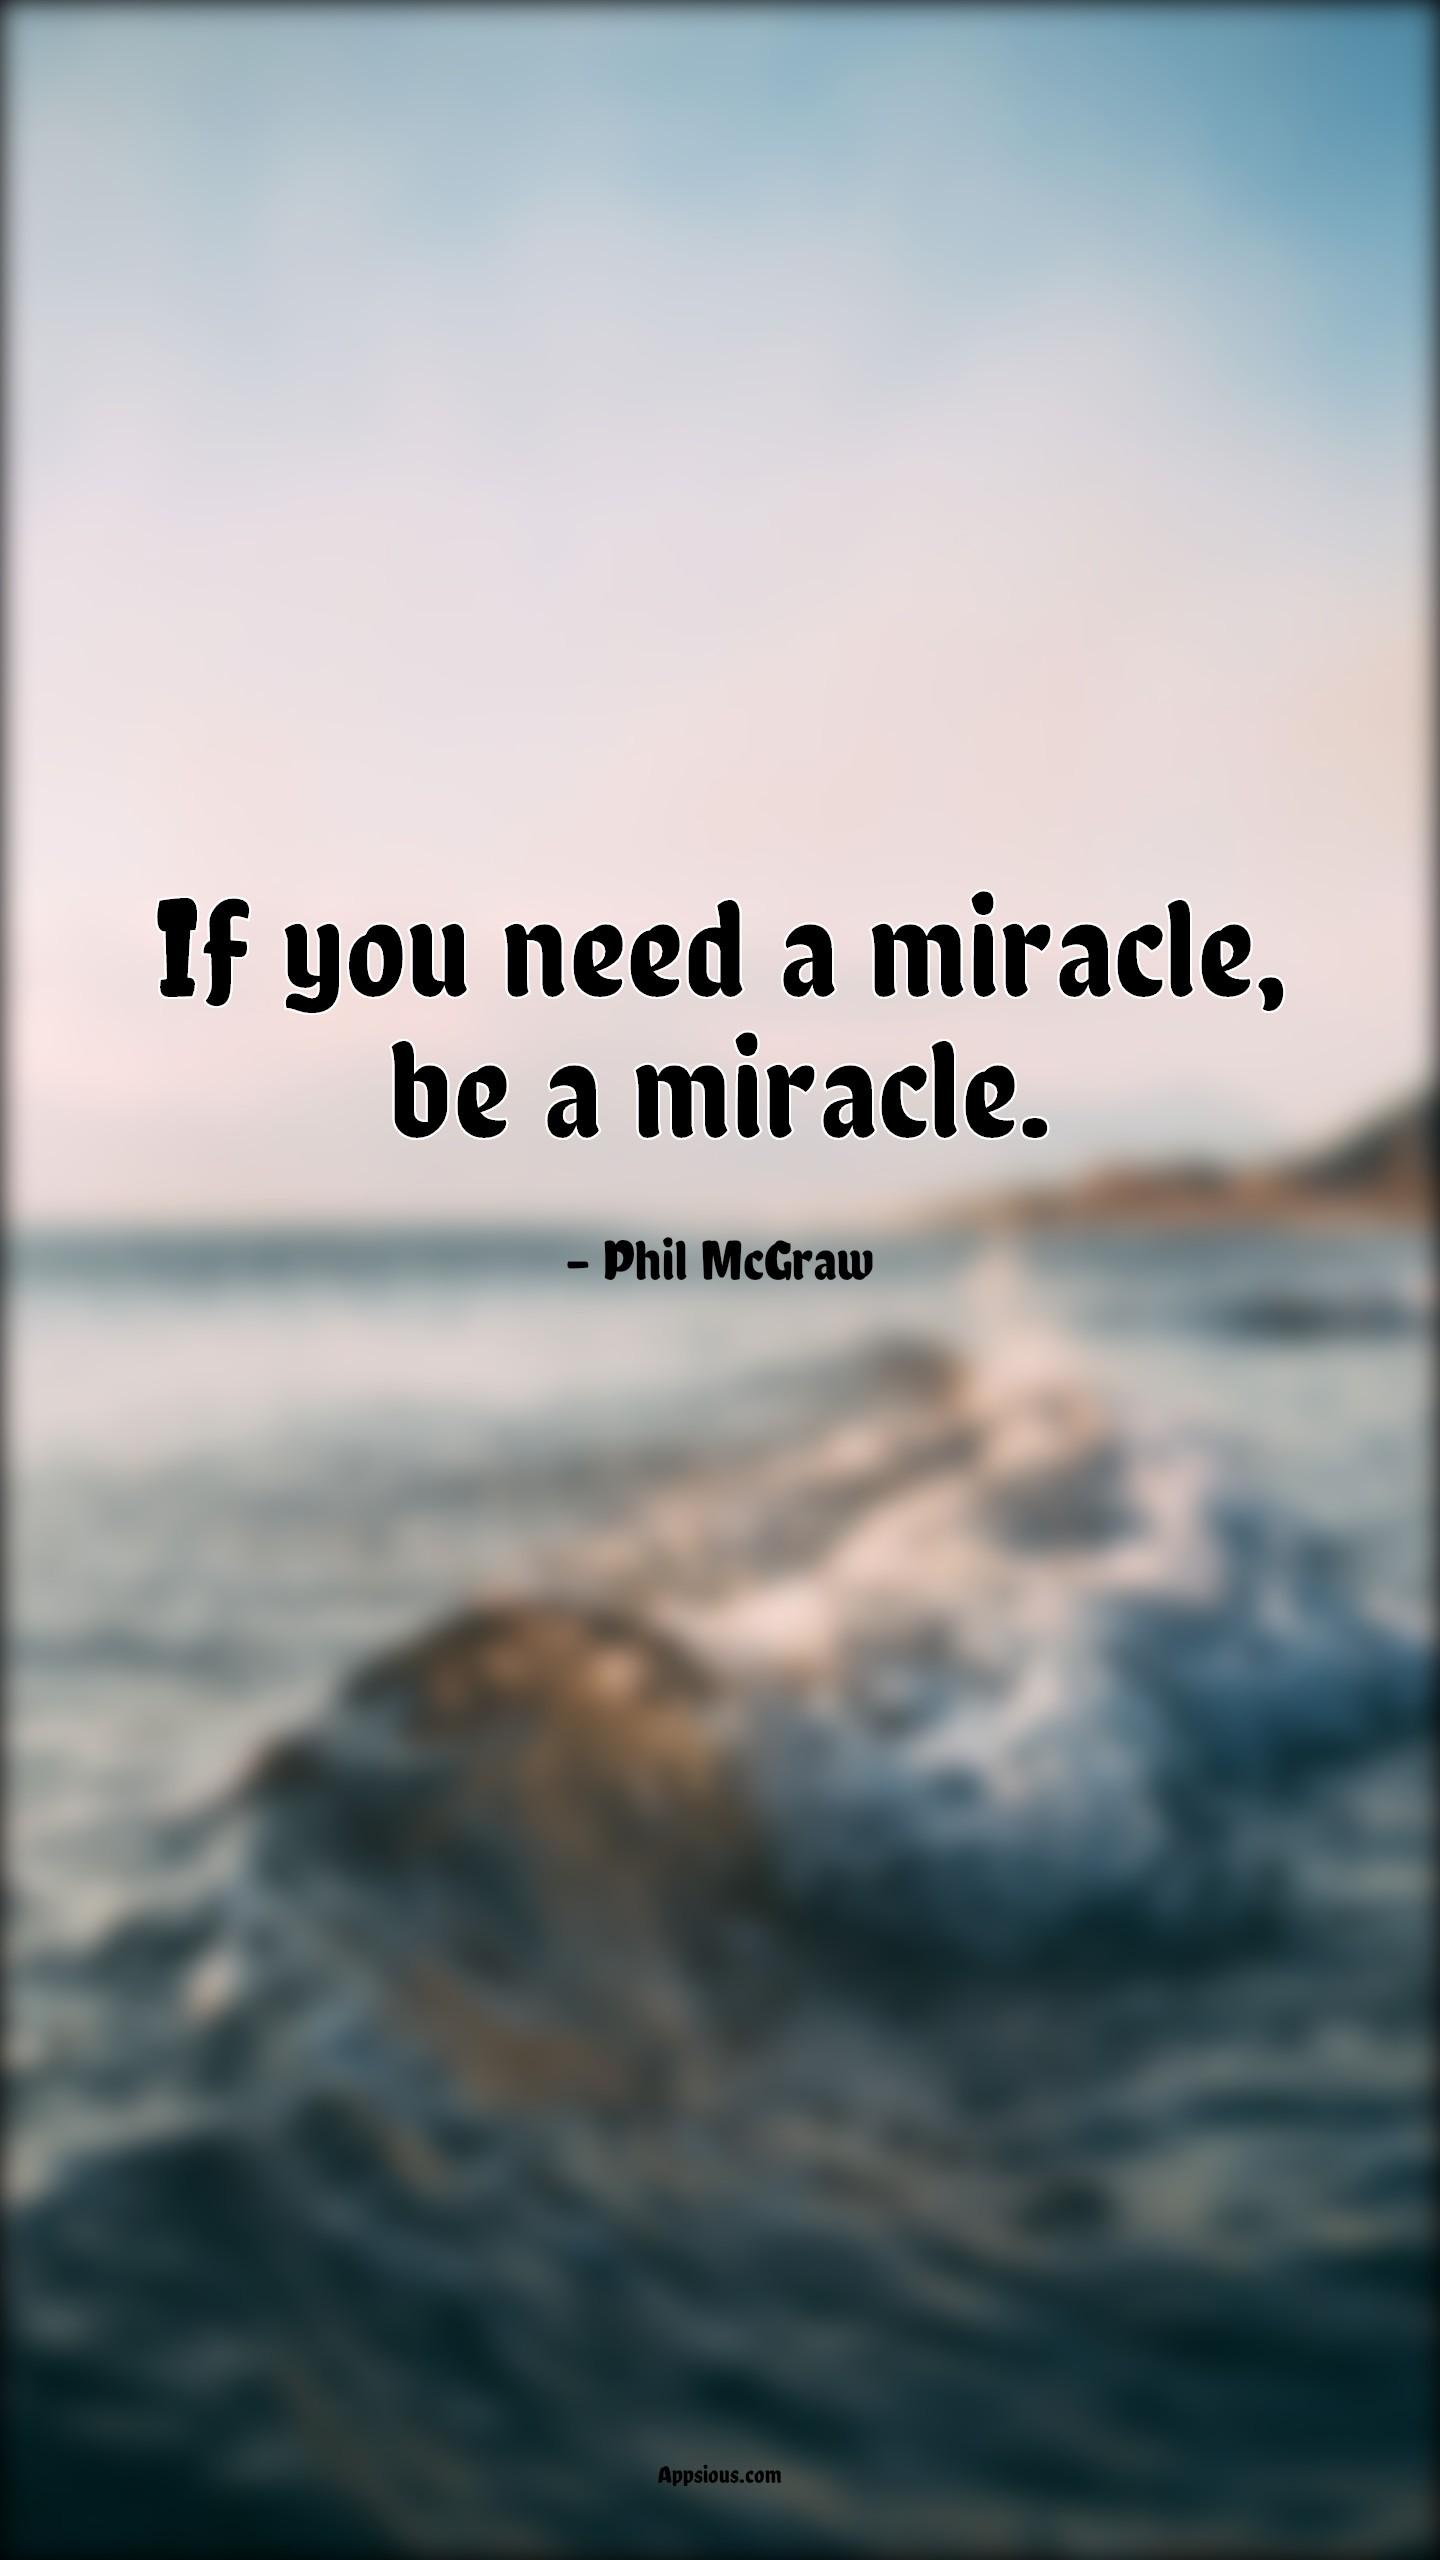 If you need a miracle, be a miracle.